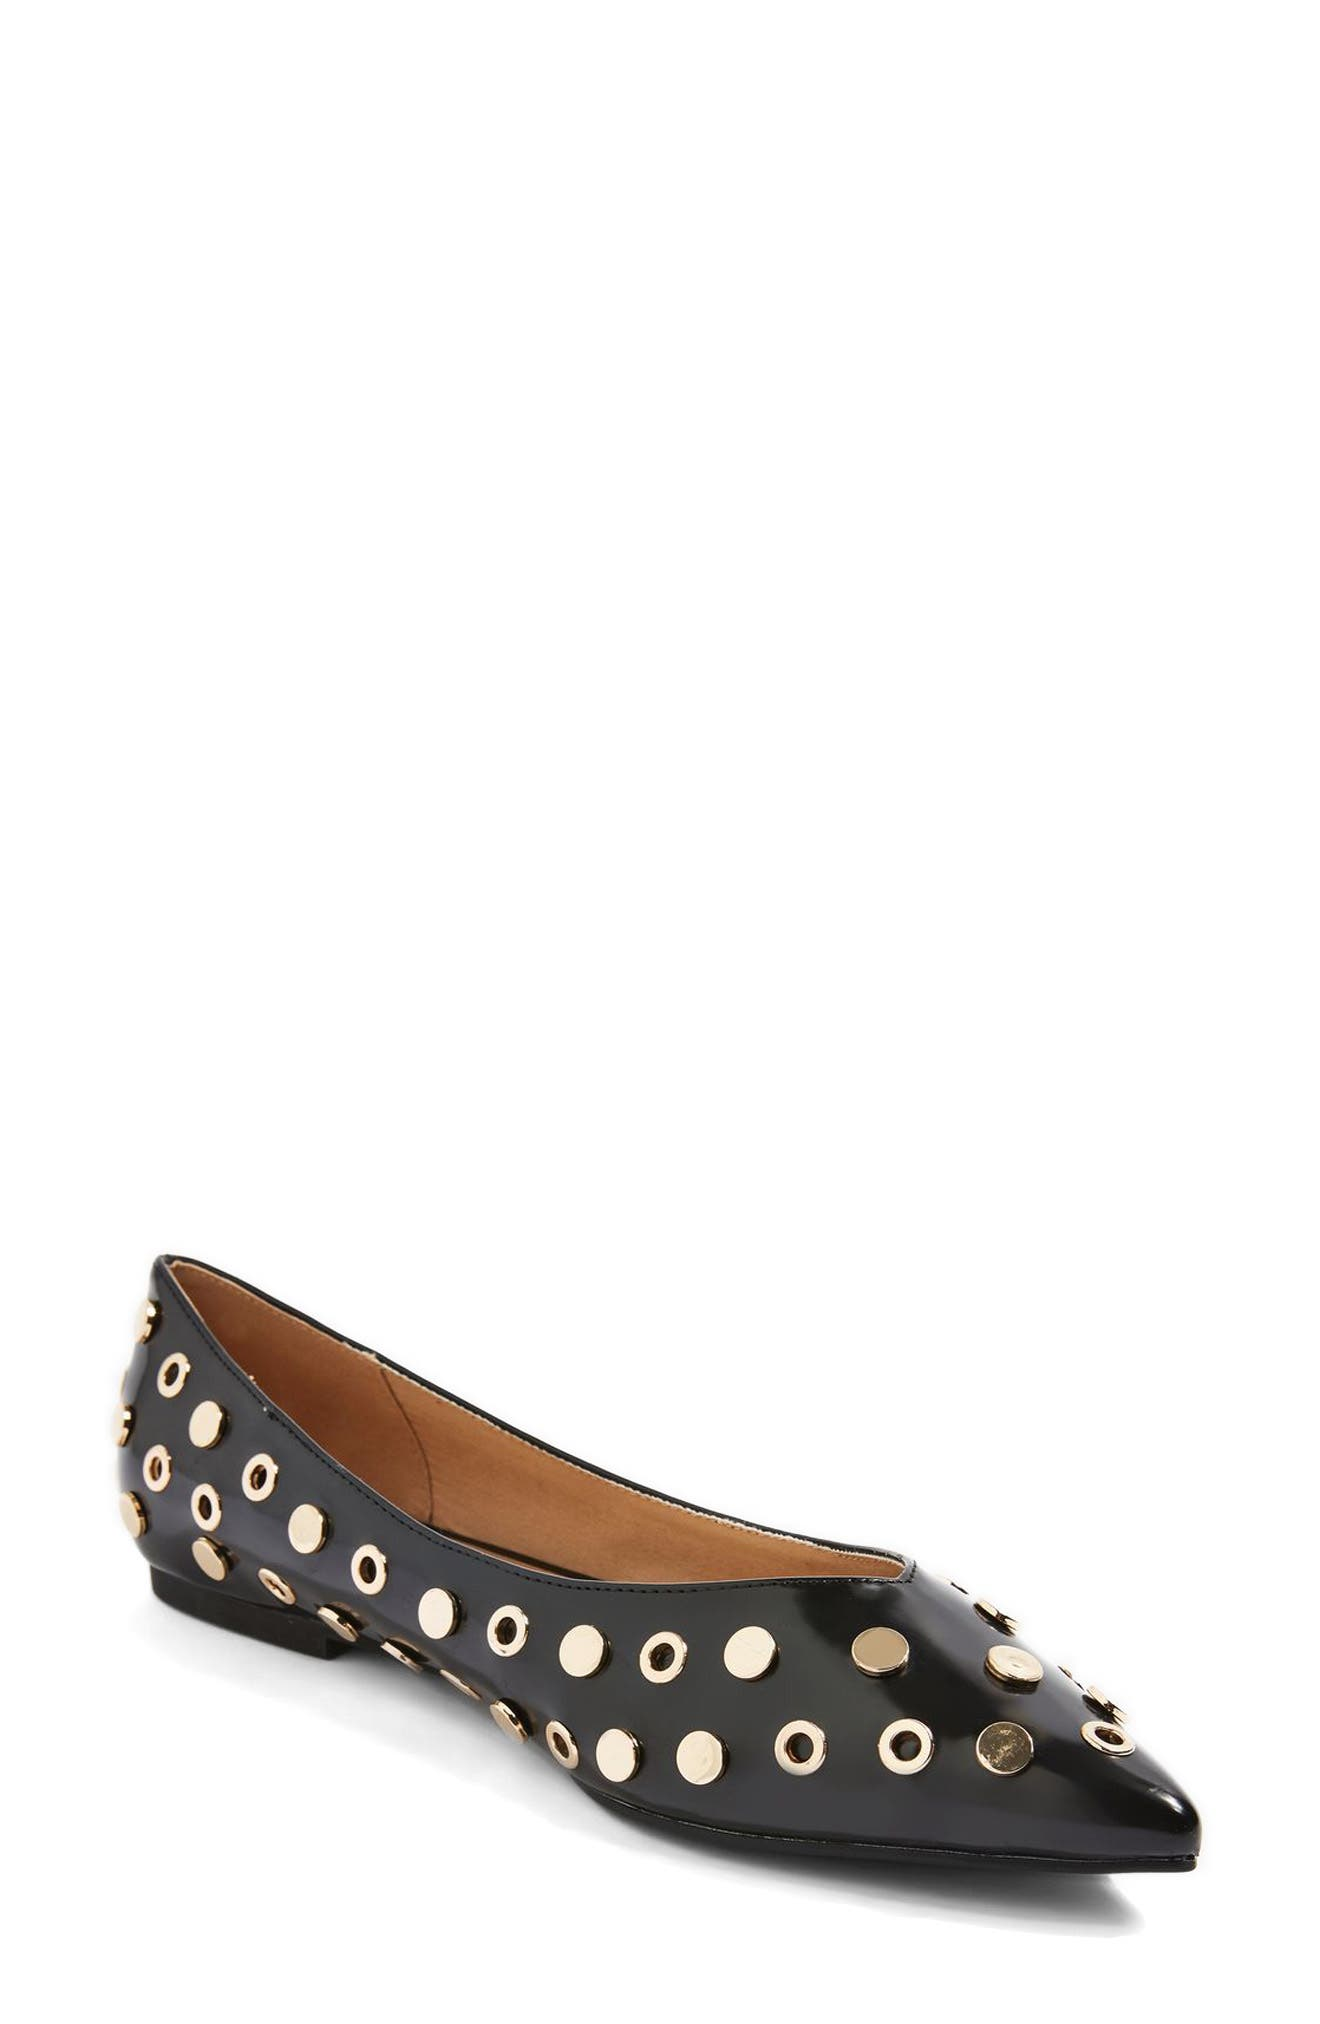 Alternate Image 1 Selected - Topshop Alibi Multi Studded Flat (Women)